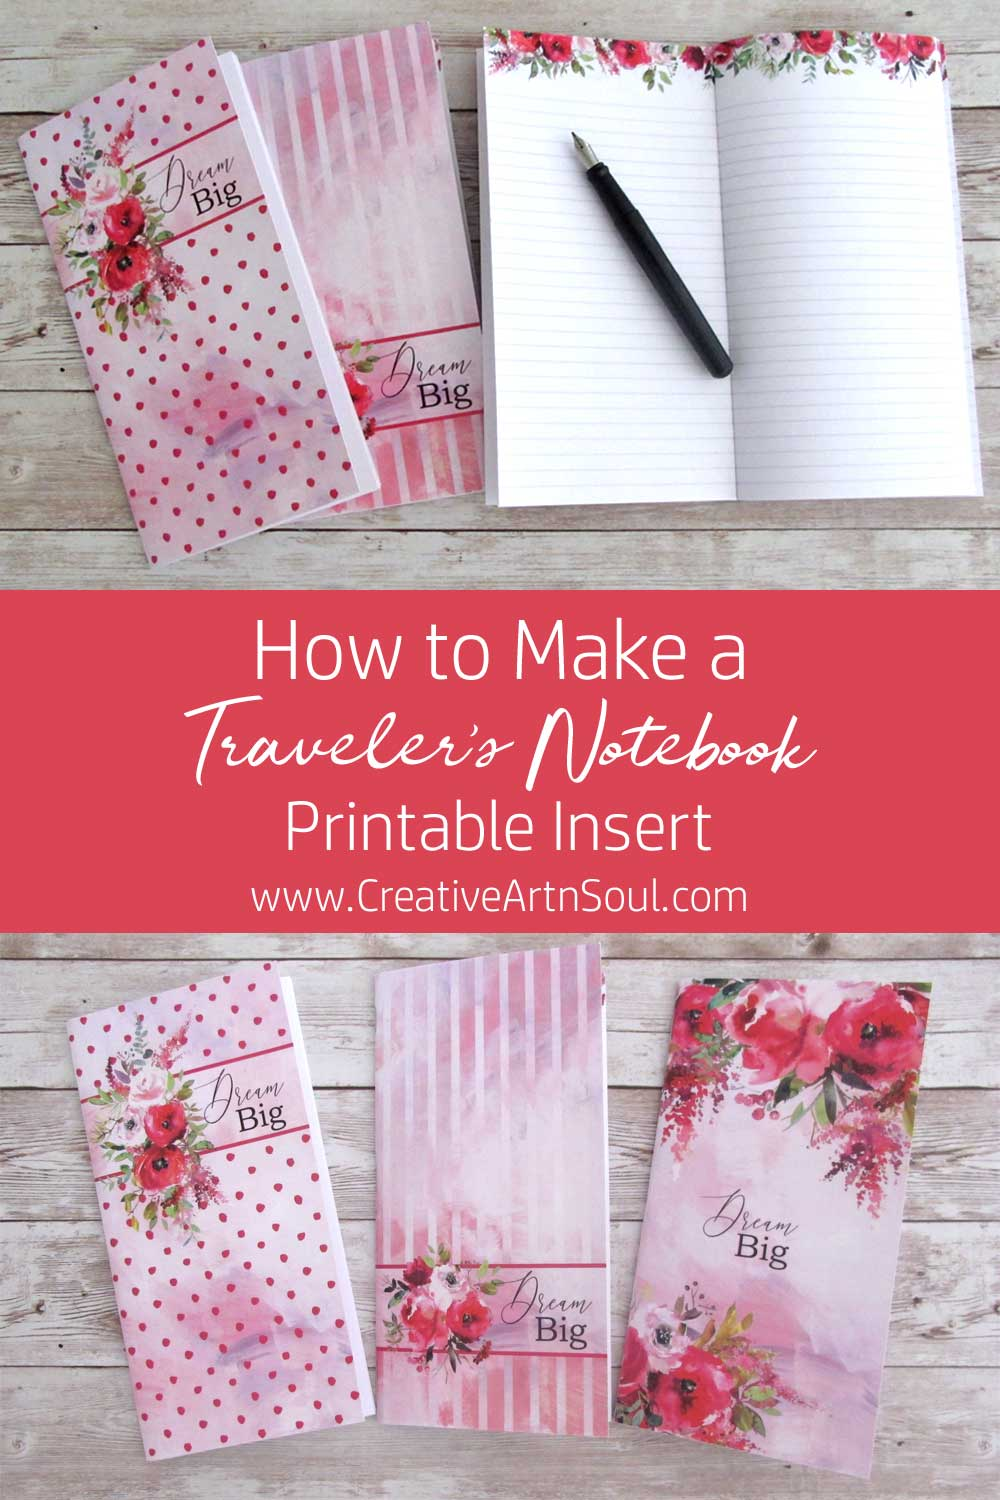 How to Make a Traveler's Notebook Insert